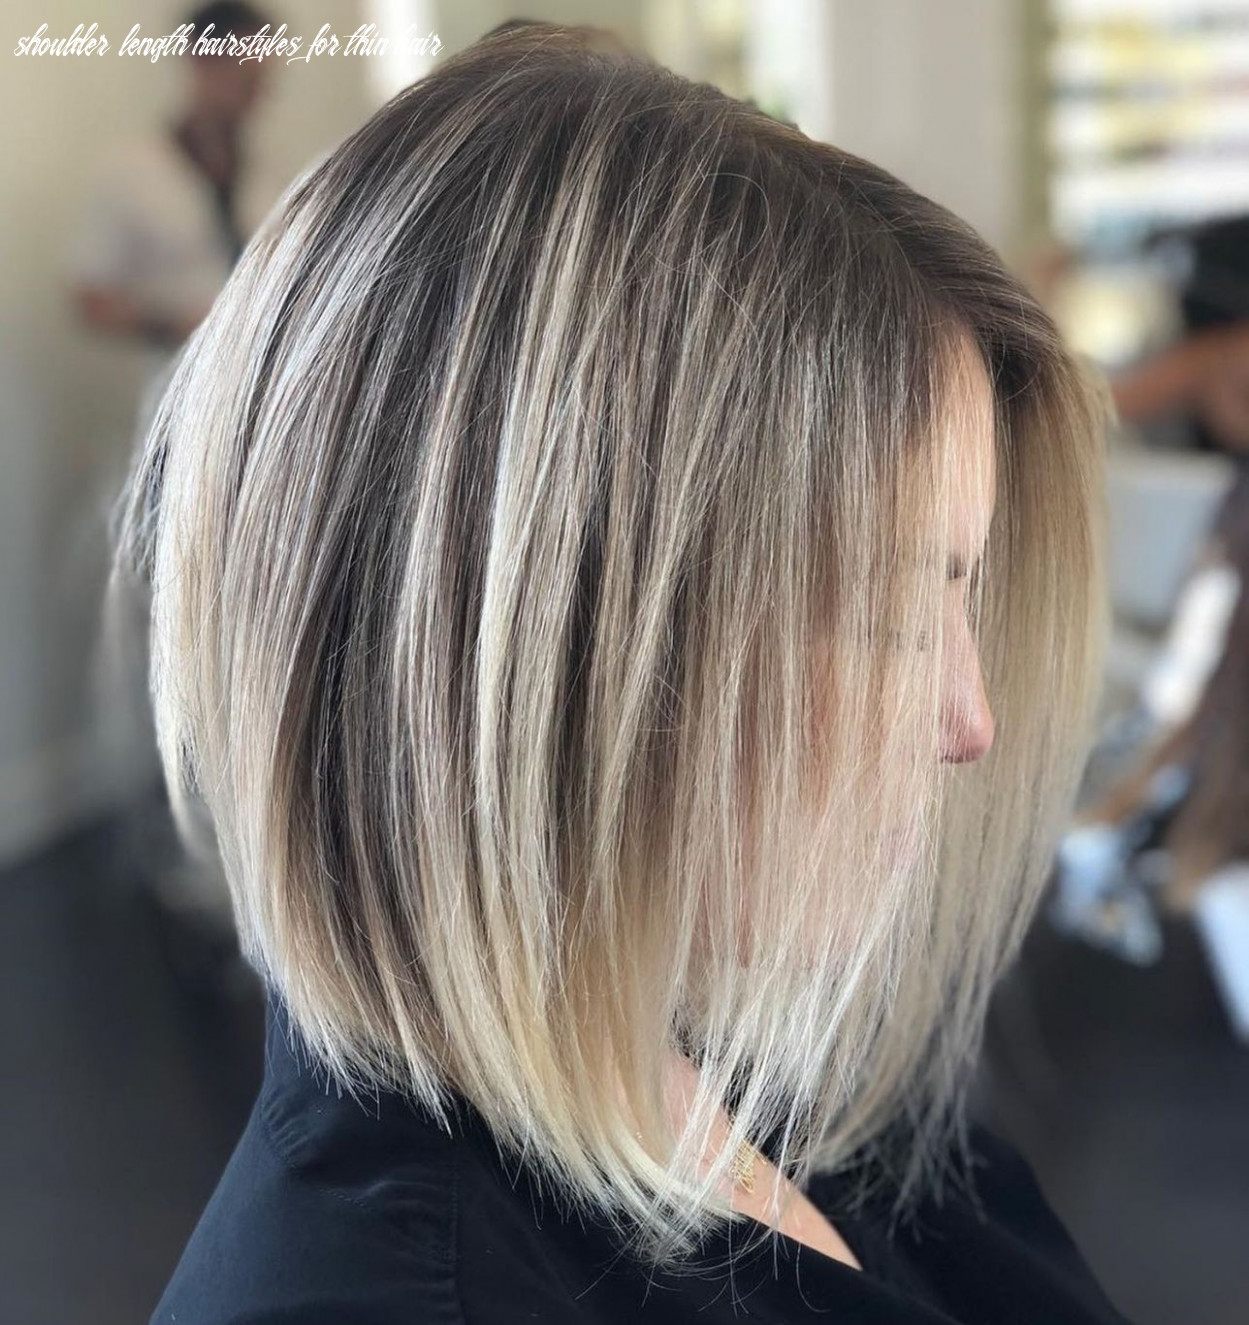 10 perfect medium length hairstyles for thin hair   hairstyles for